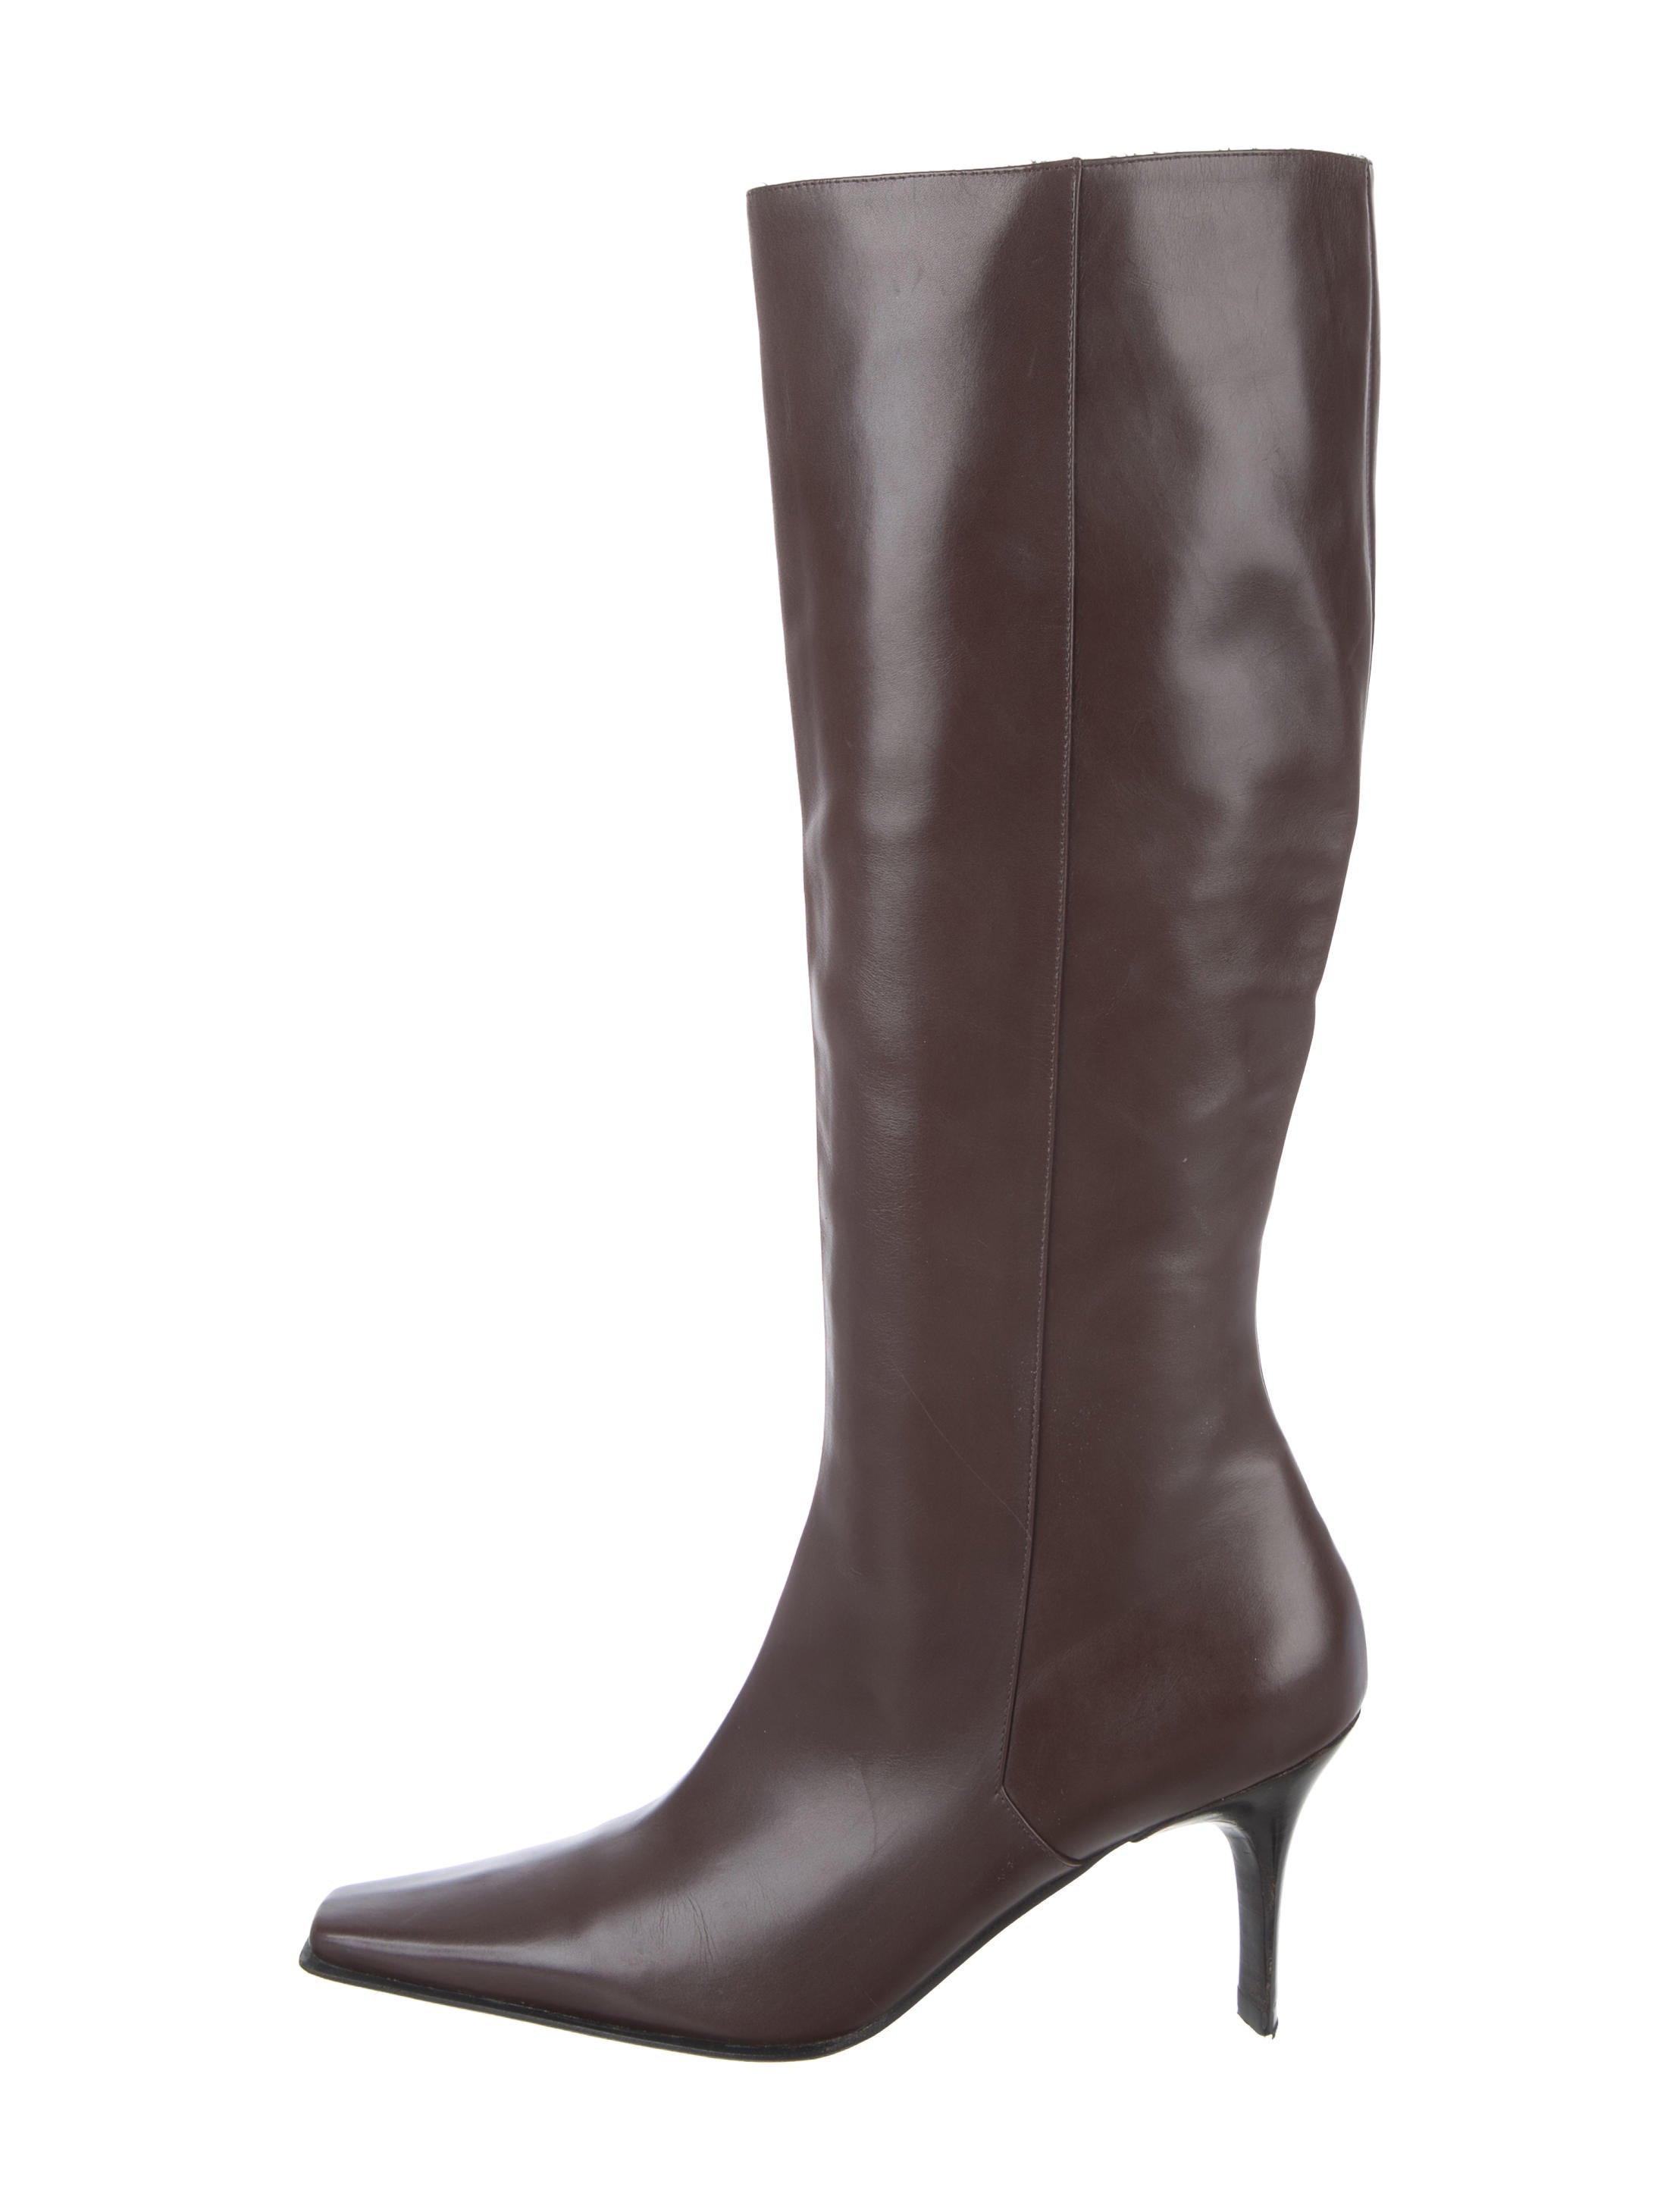 casadei leather knee high boots shoes cei22752 the realreal. Black Bedroom Furniture Sets. Home Design Ideas